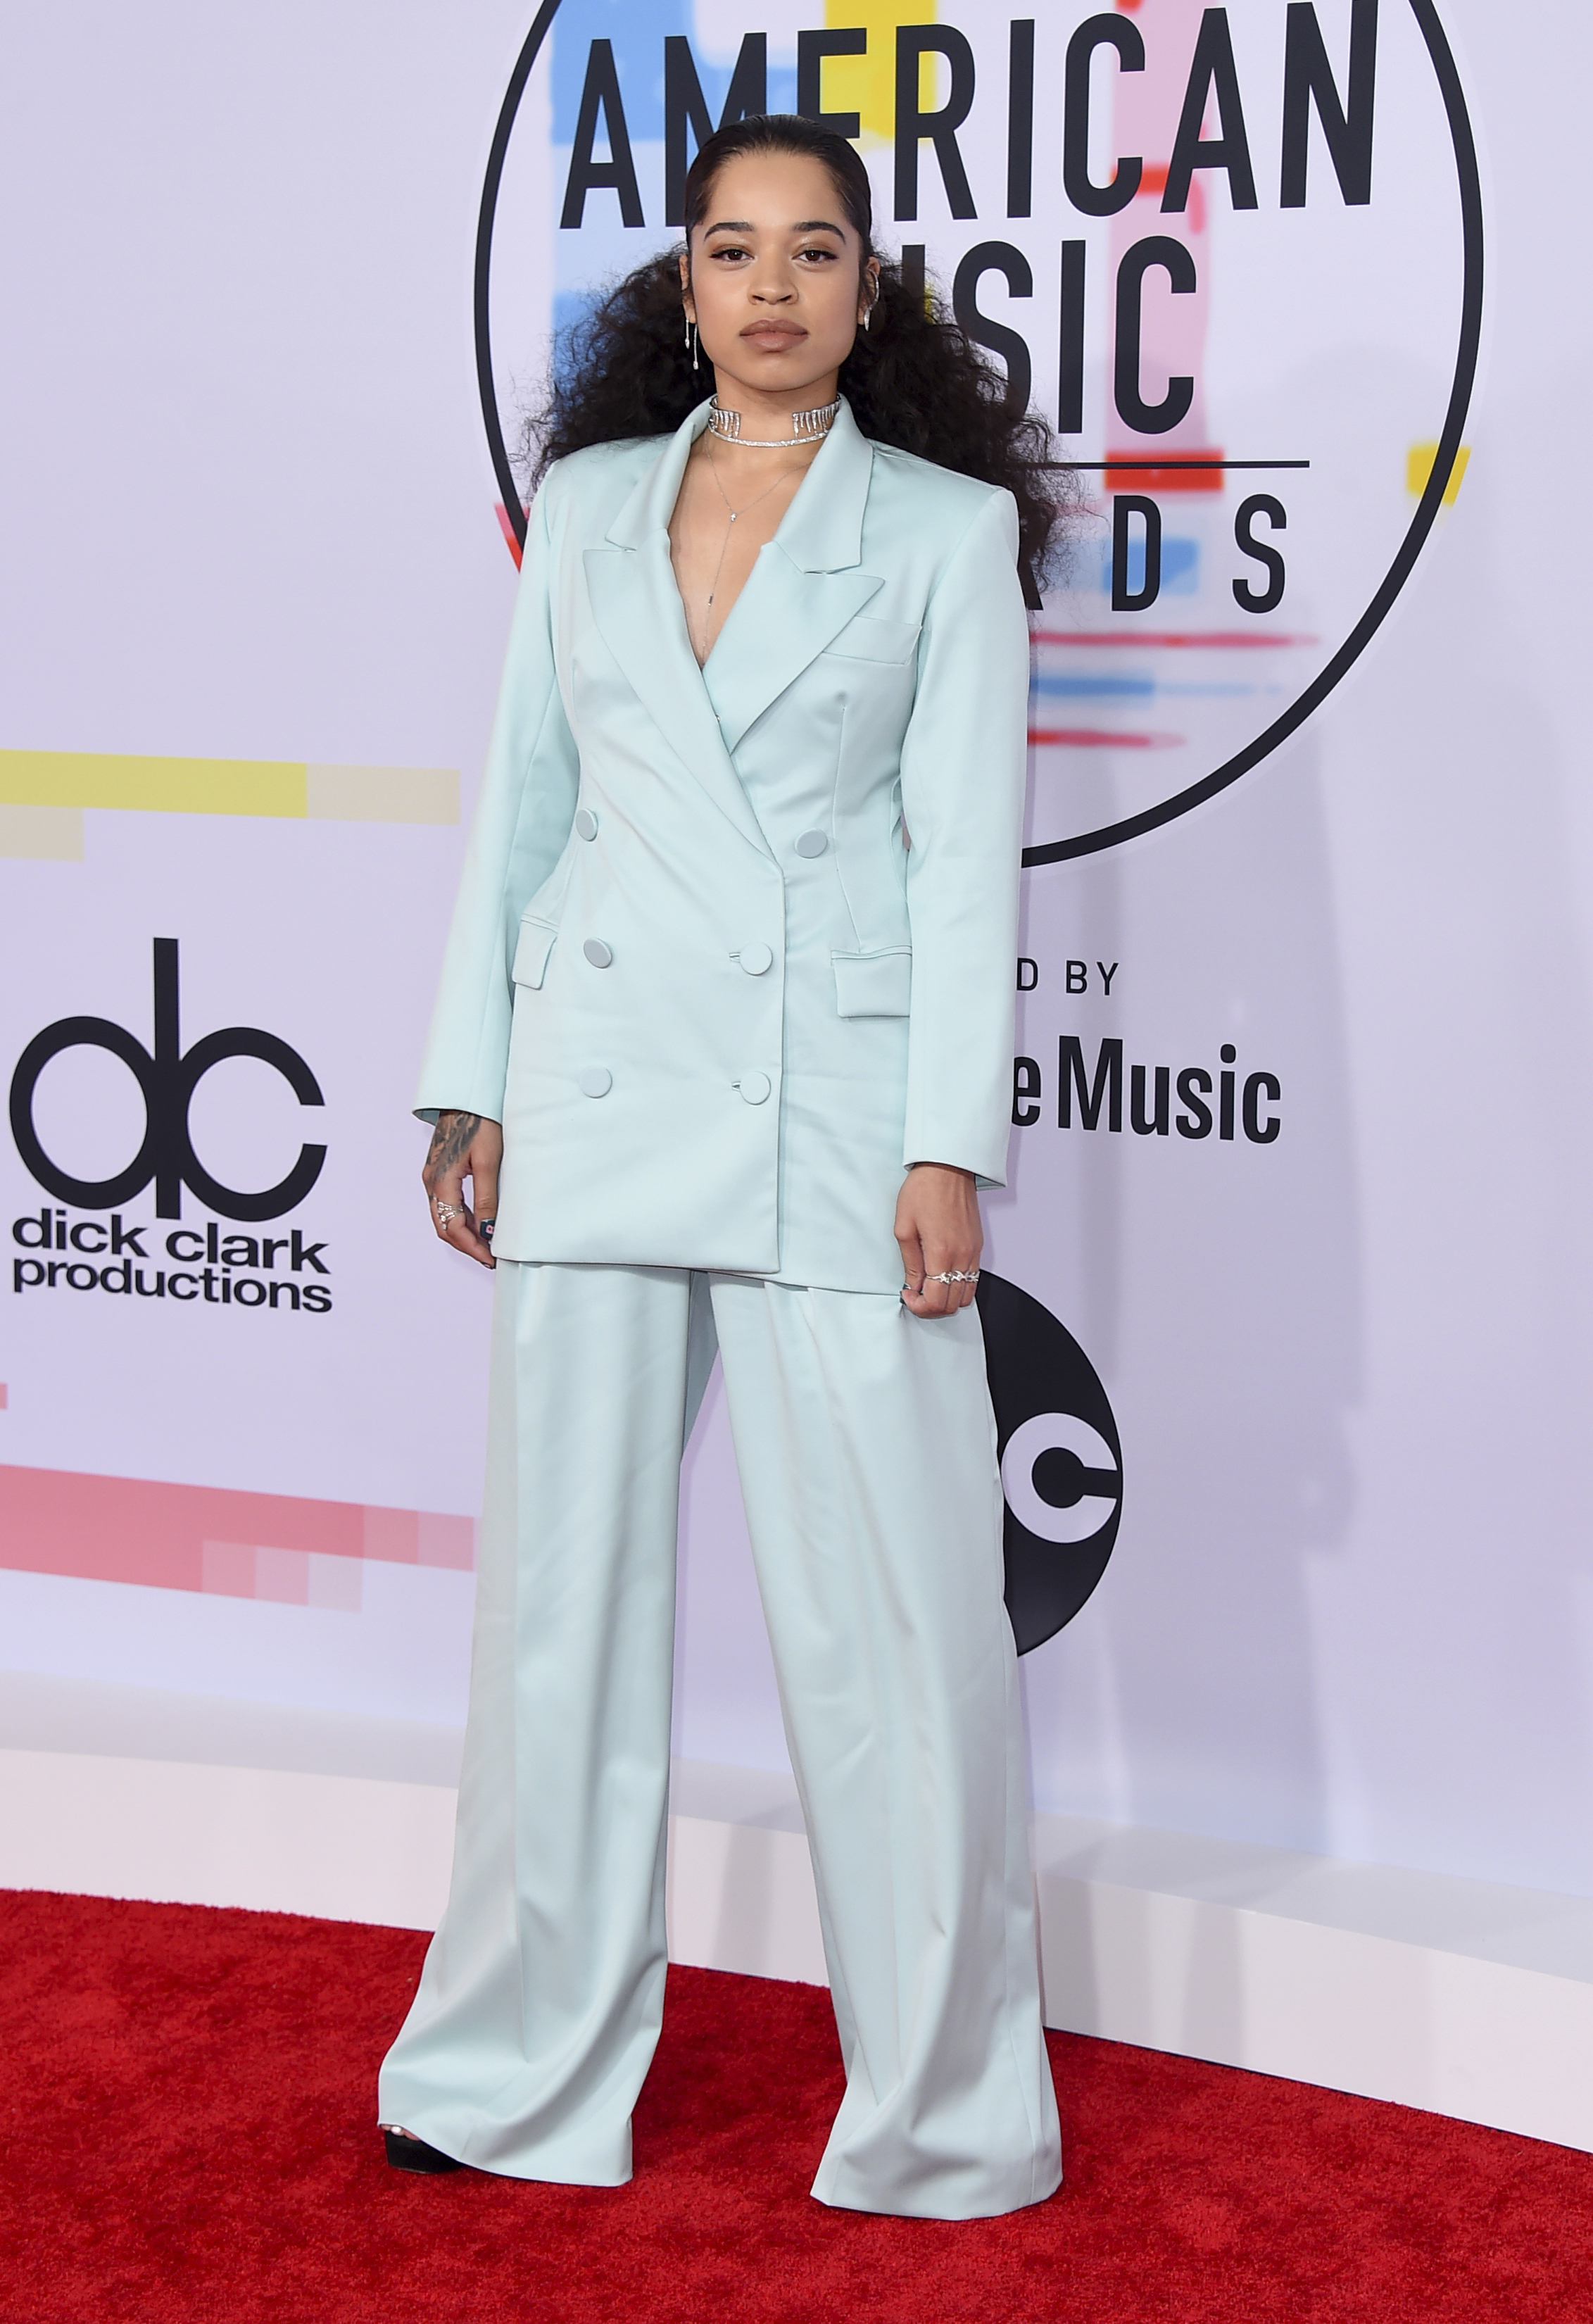 "<div class=""meta image-caption""><div class=""origin-logo origin-image none""><span>none</span></div><span class=""caption-text"">Ella Mai arrives at the American Music Awards on Tuesday, Oct. 9, 2018, at the Microsoft Theater in Los Angeles (Jordan Strauss/Invision/AP)</span></div>"